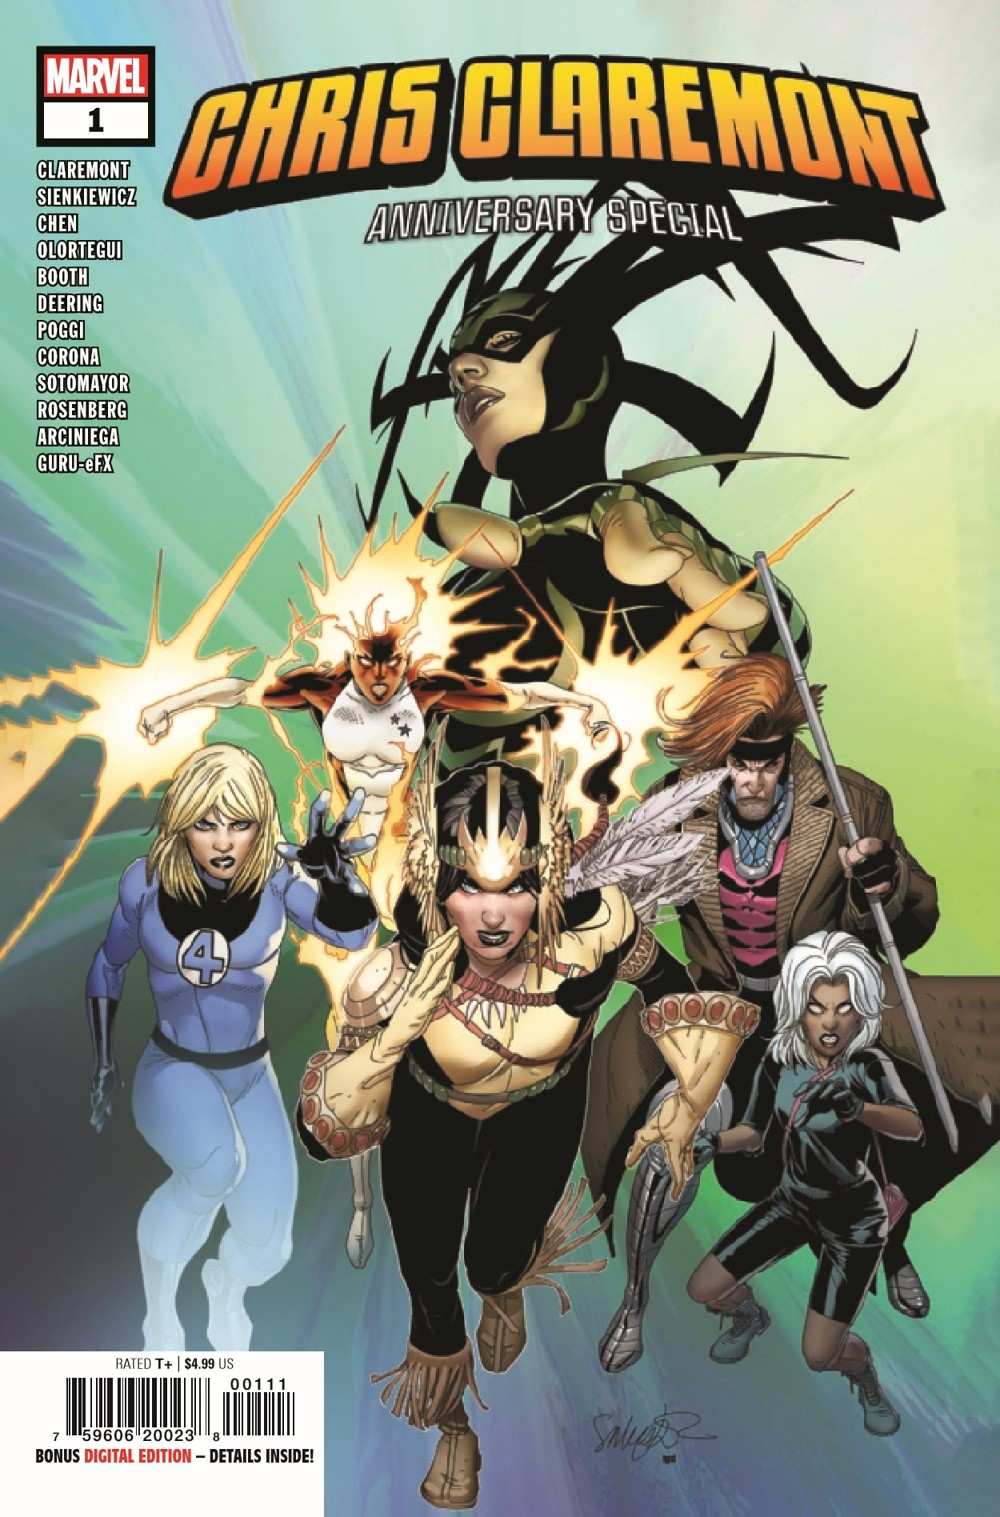 CLAREMONTSP2020001_Preview-1 ComicList Previews: CHRIS CLAREMONT ANNIVERSARY SPECIAL #1